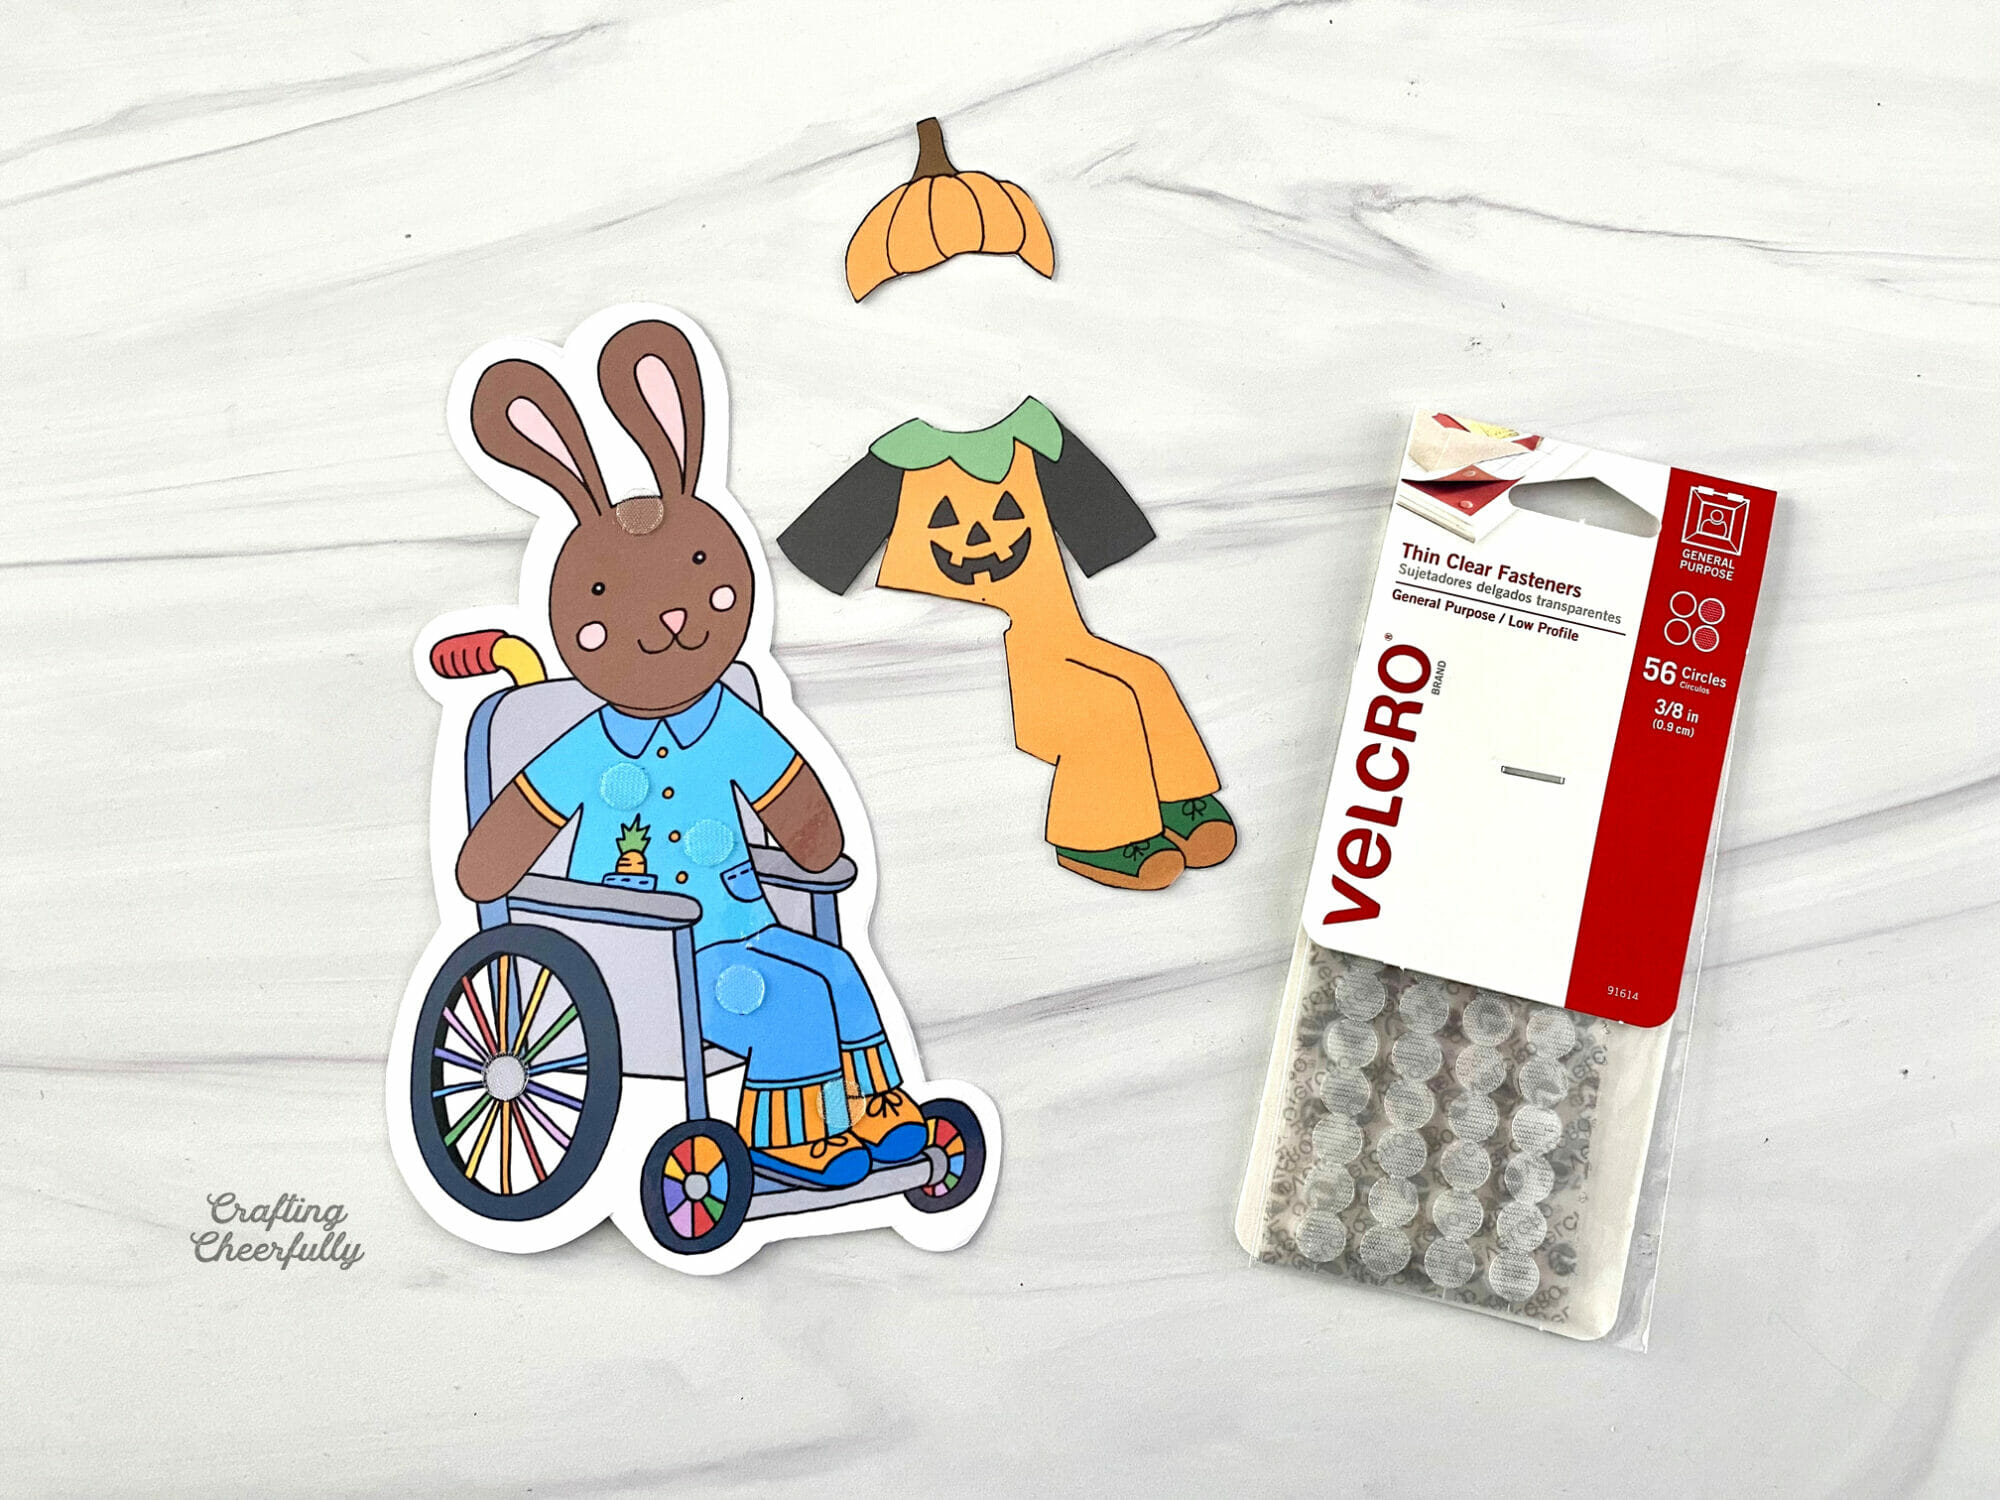 A paper brown bunny sitting in a wheelchair lays next to a paper pumpkin costume.